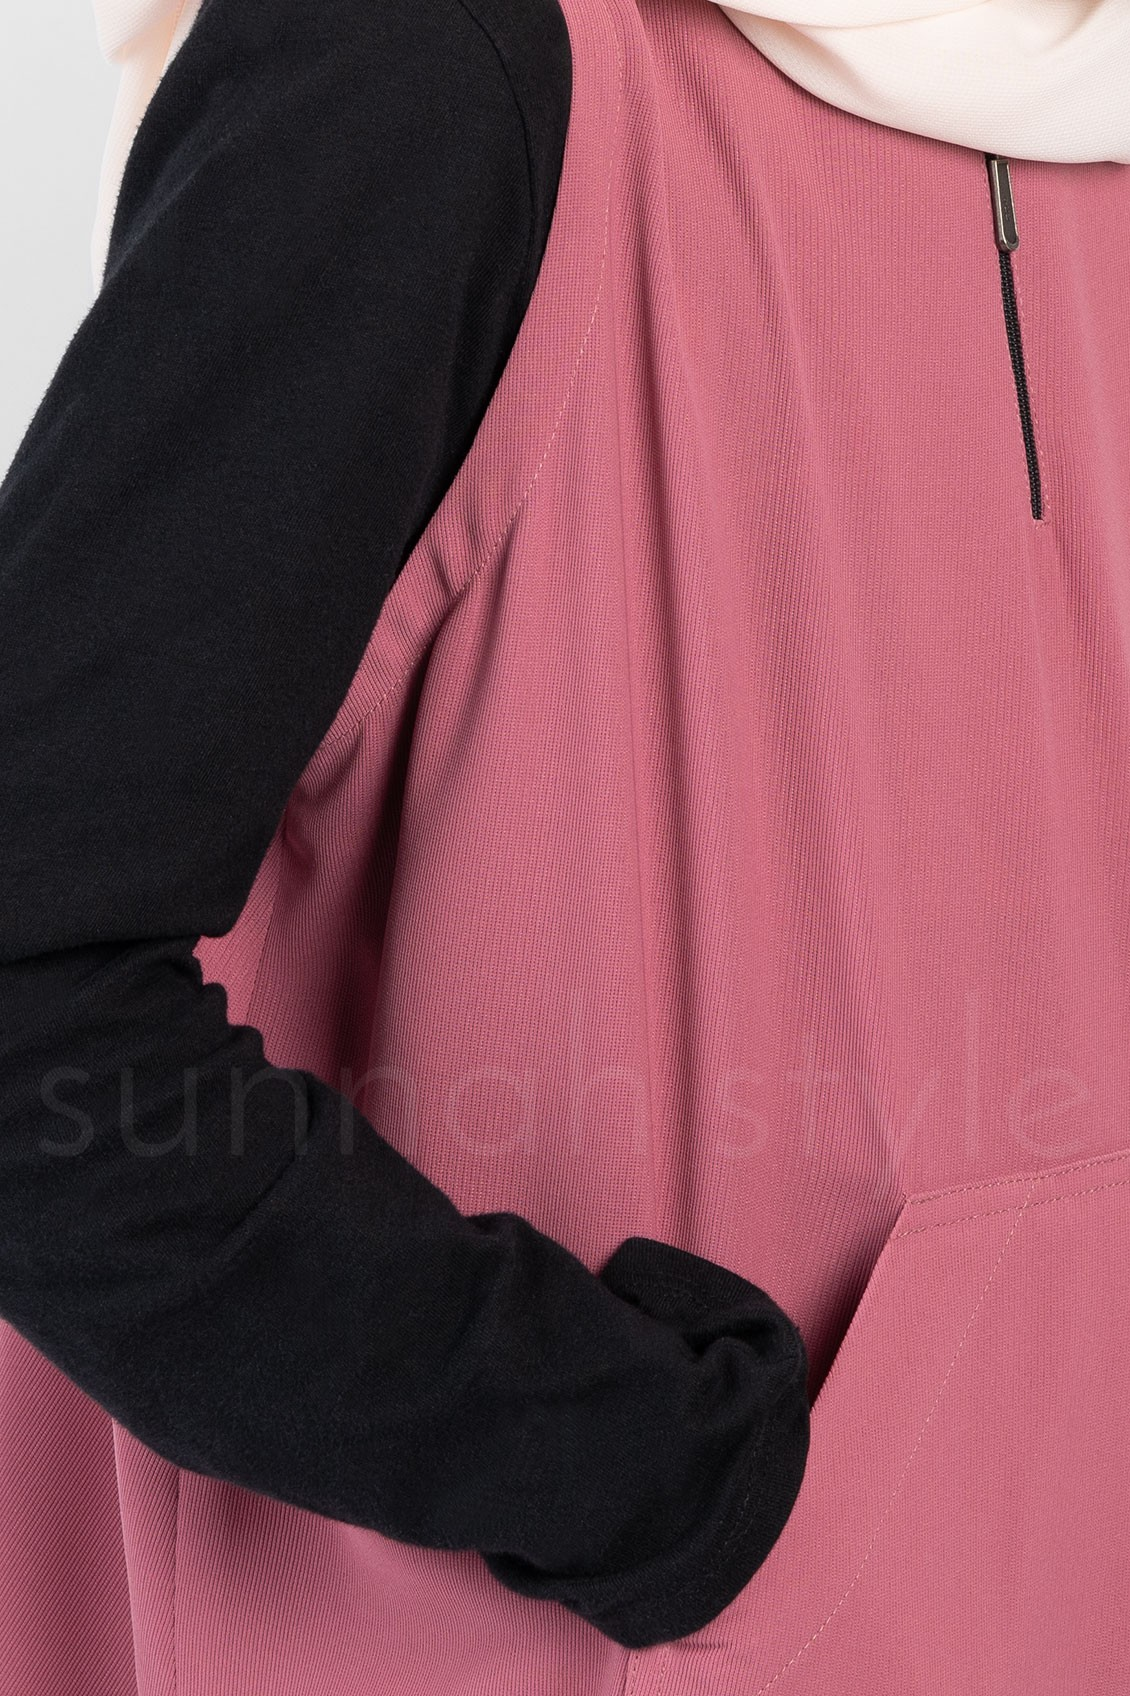 Sunnah Style Girls Essentials Sleeveless Abaya Desert Rose Pink